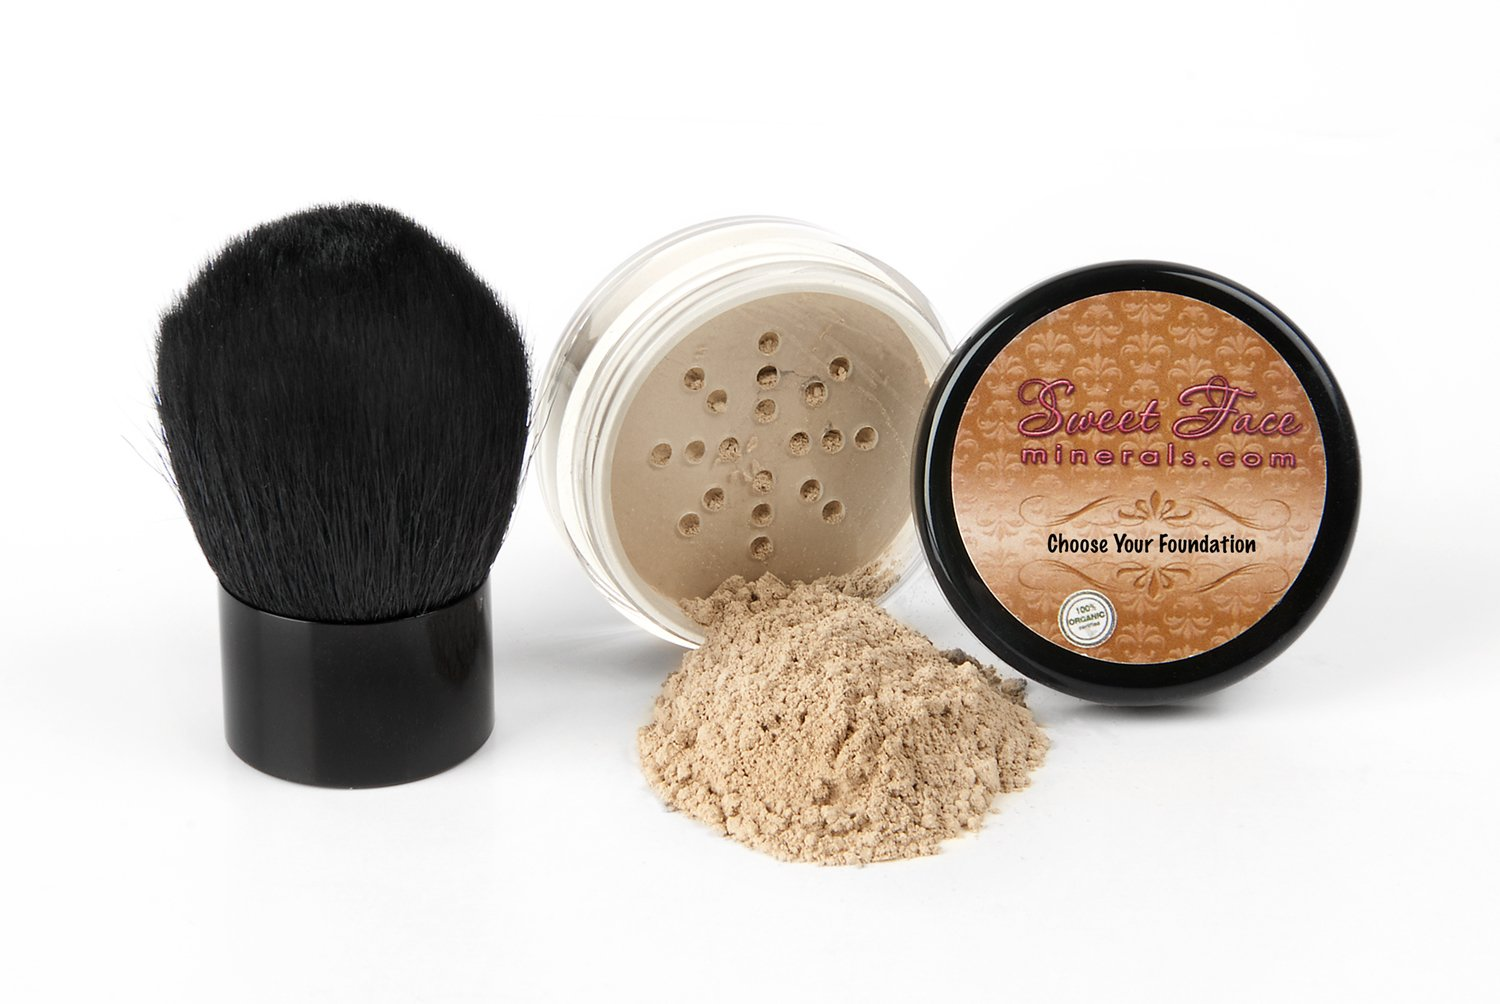 2pc FOUNDATION with KABUKI BRUSH Mineral Makeup (FAIR 1) Matte Loose Powder Bare Face Cosmetics Full Coverage Long Lasting All Skin Types SPF 18